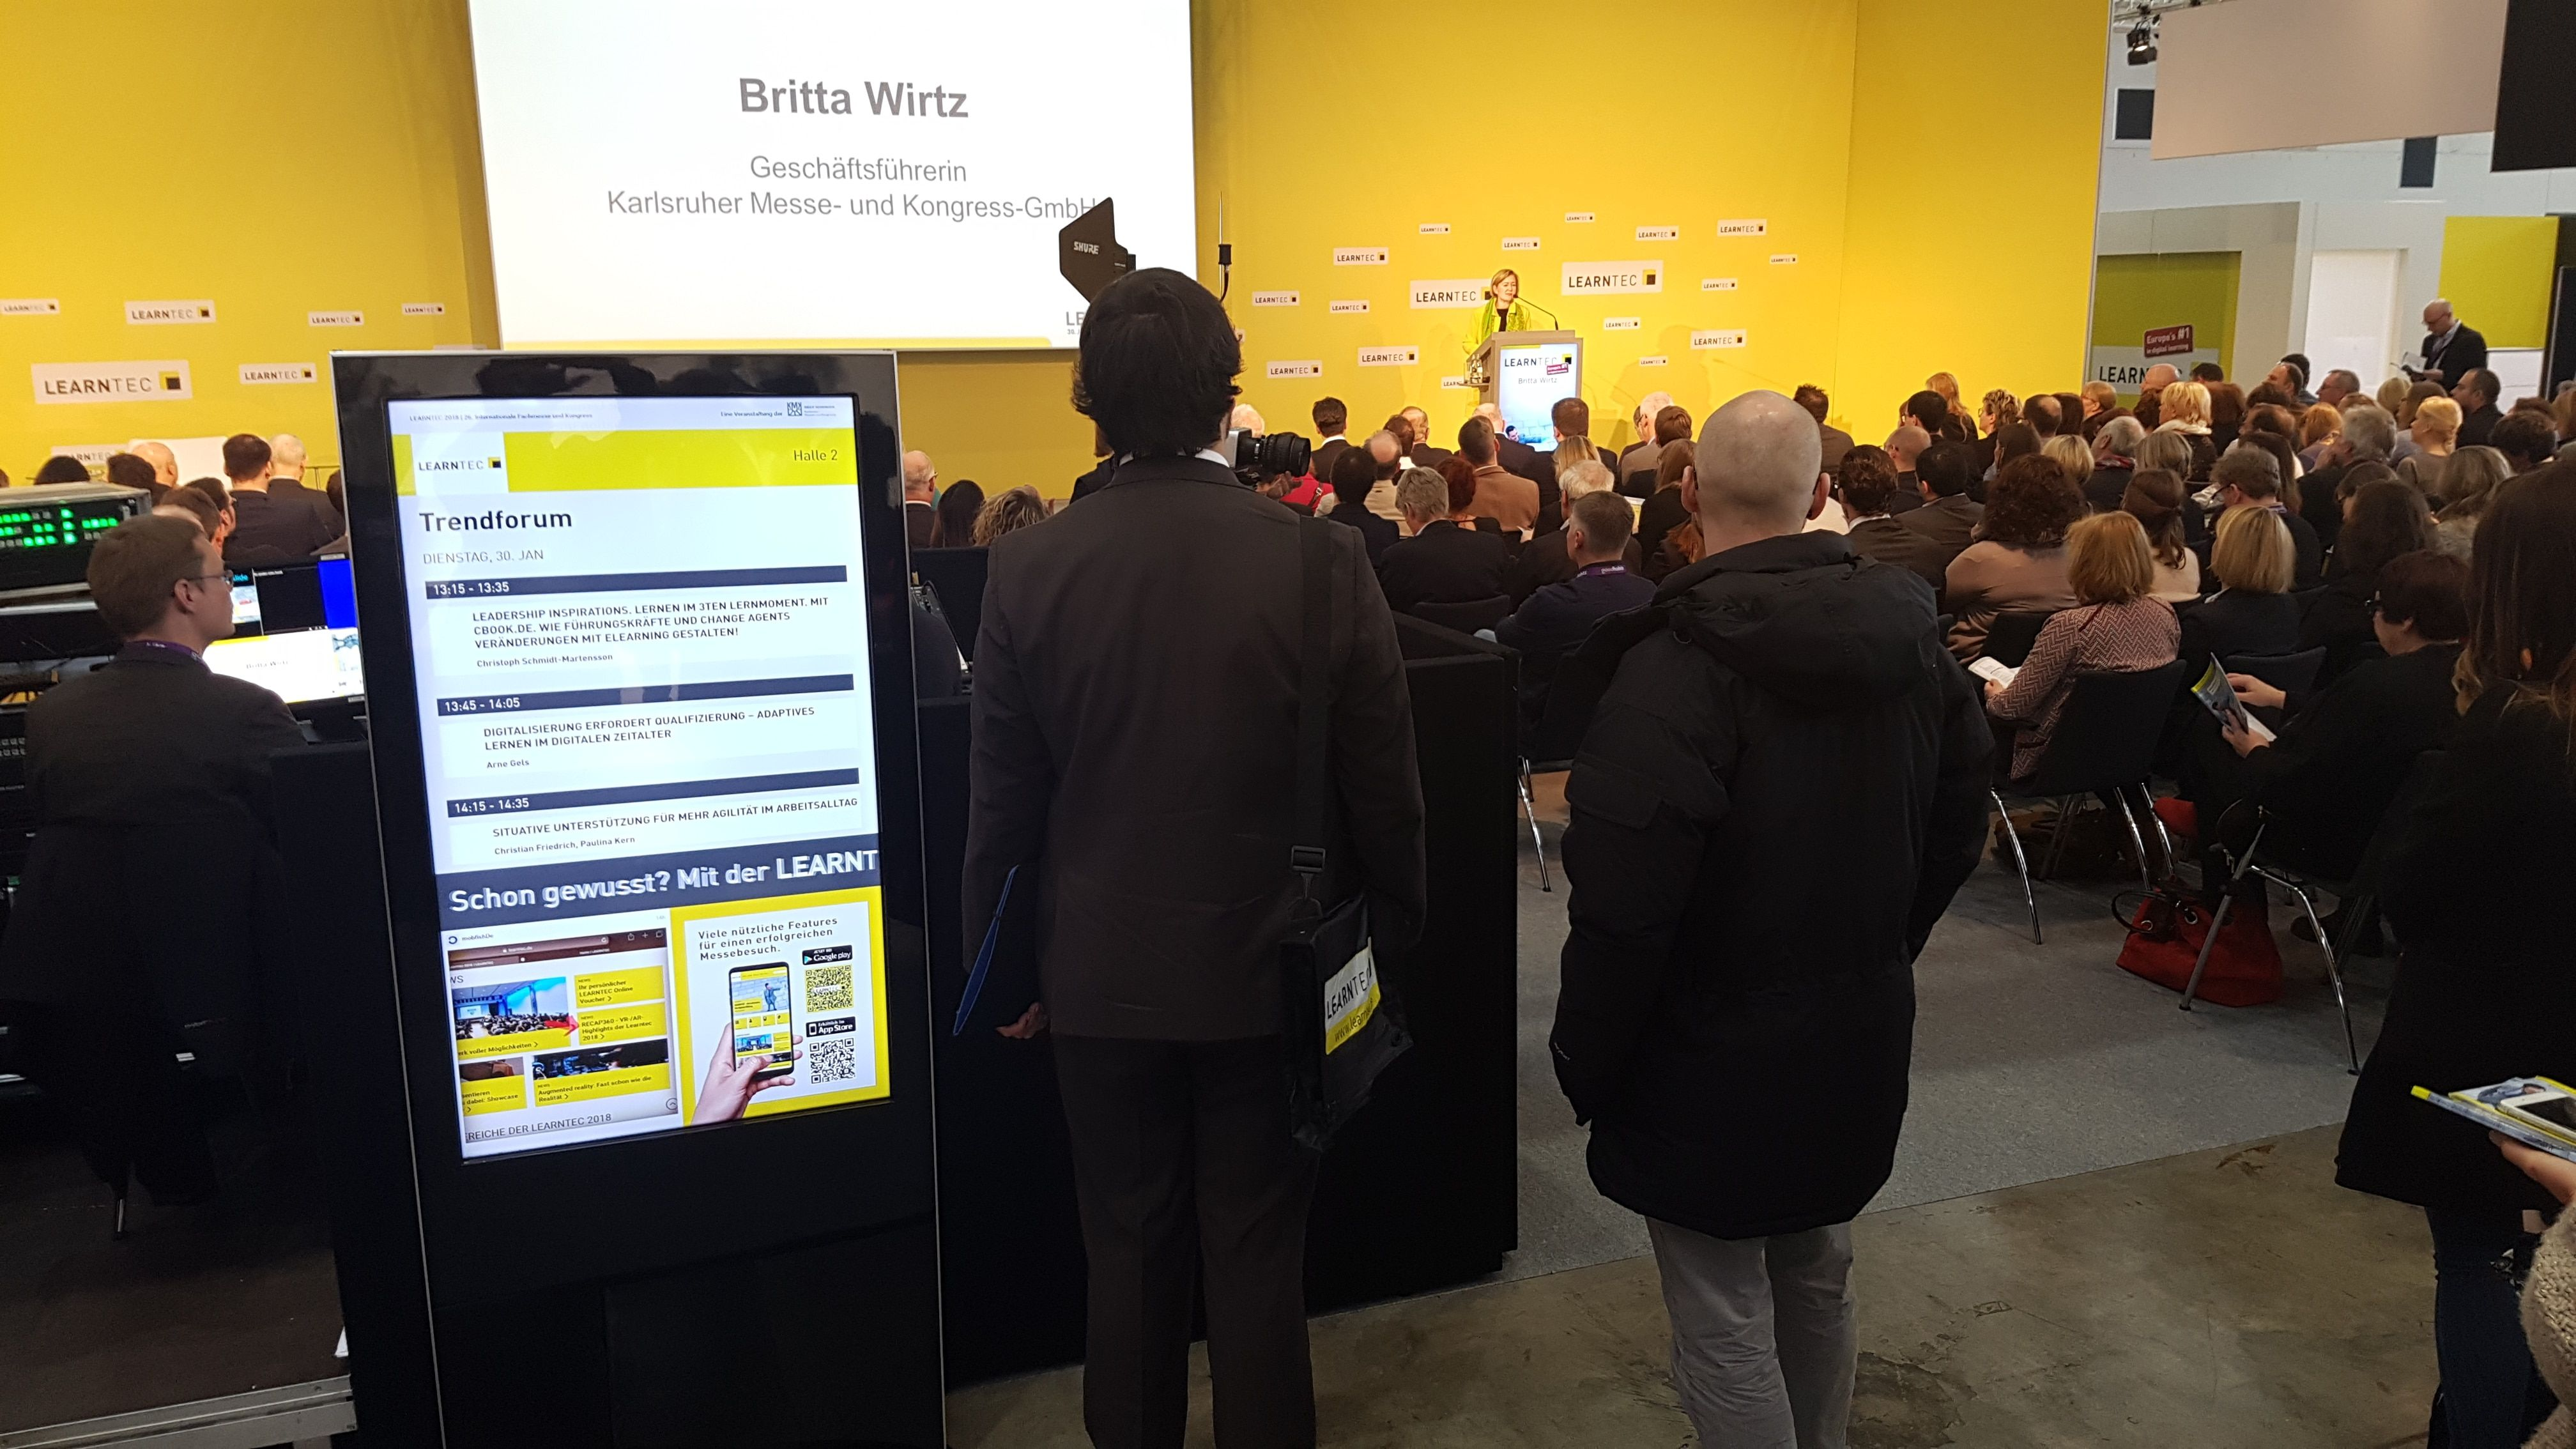 Digital signage at Learntec 2018 - KONGRES – Europe Events